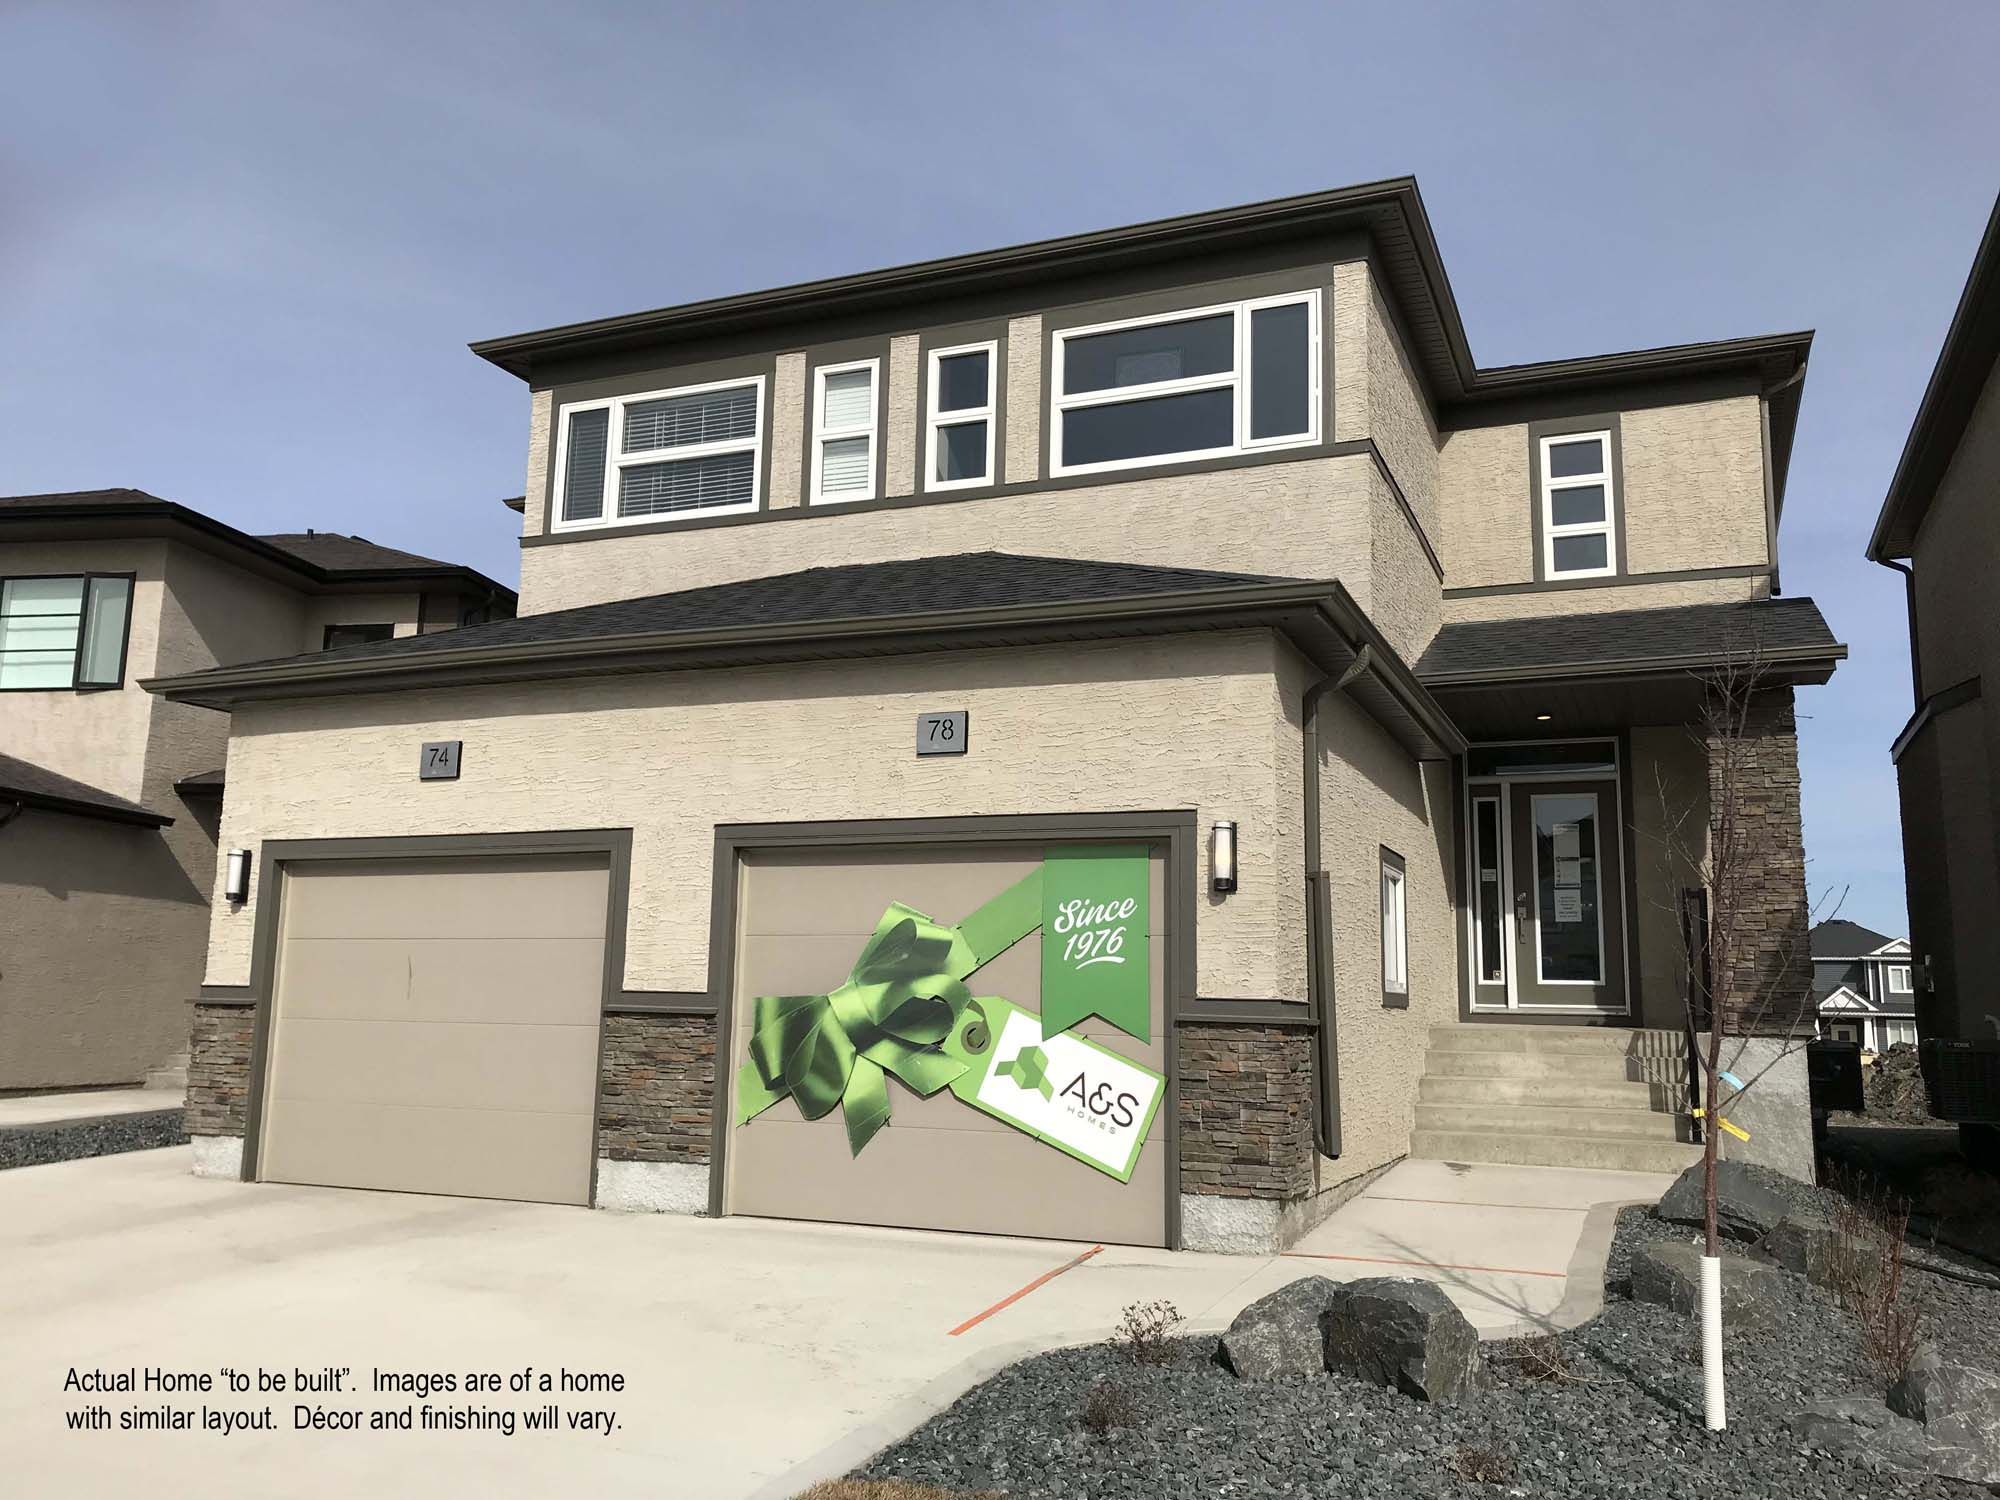 Main Photo: 61 Harvest Lane in St Adolphe: Tourond Creek Residential for sale (R07)  : MLS®# 202124604